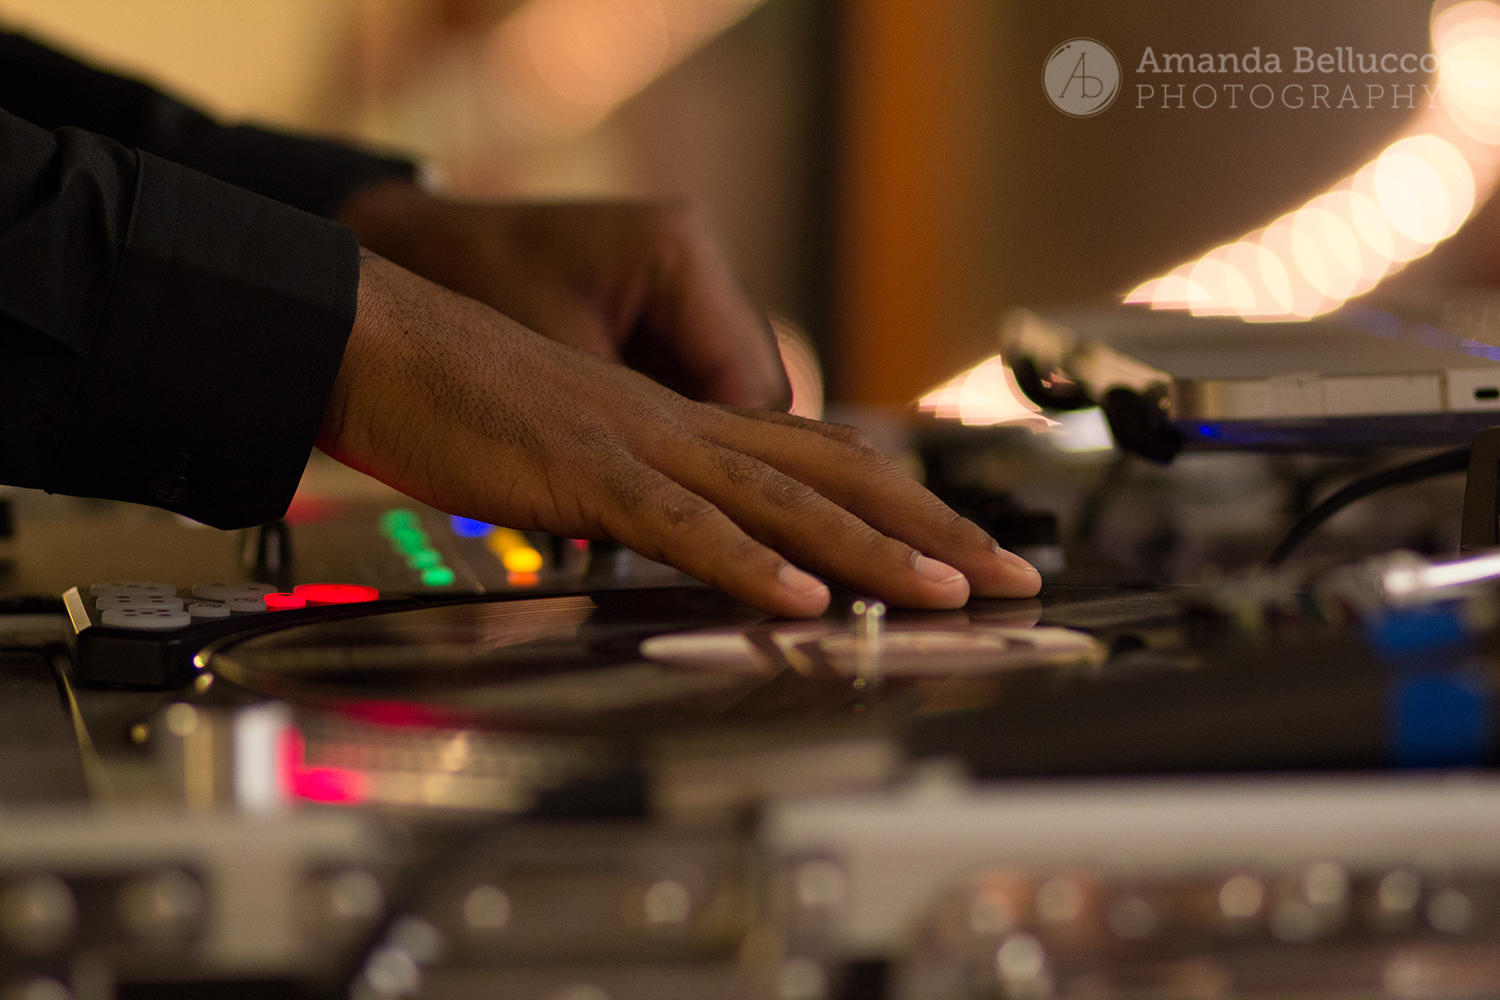 The DJ scratching during the reception at the Italian American Community Center.